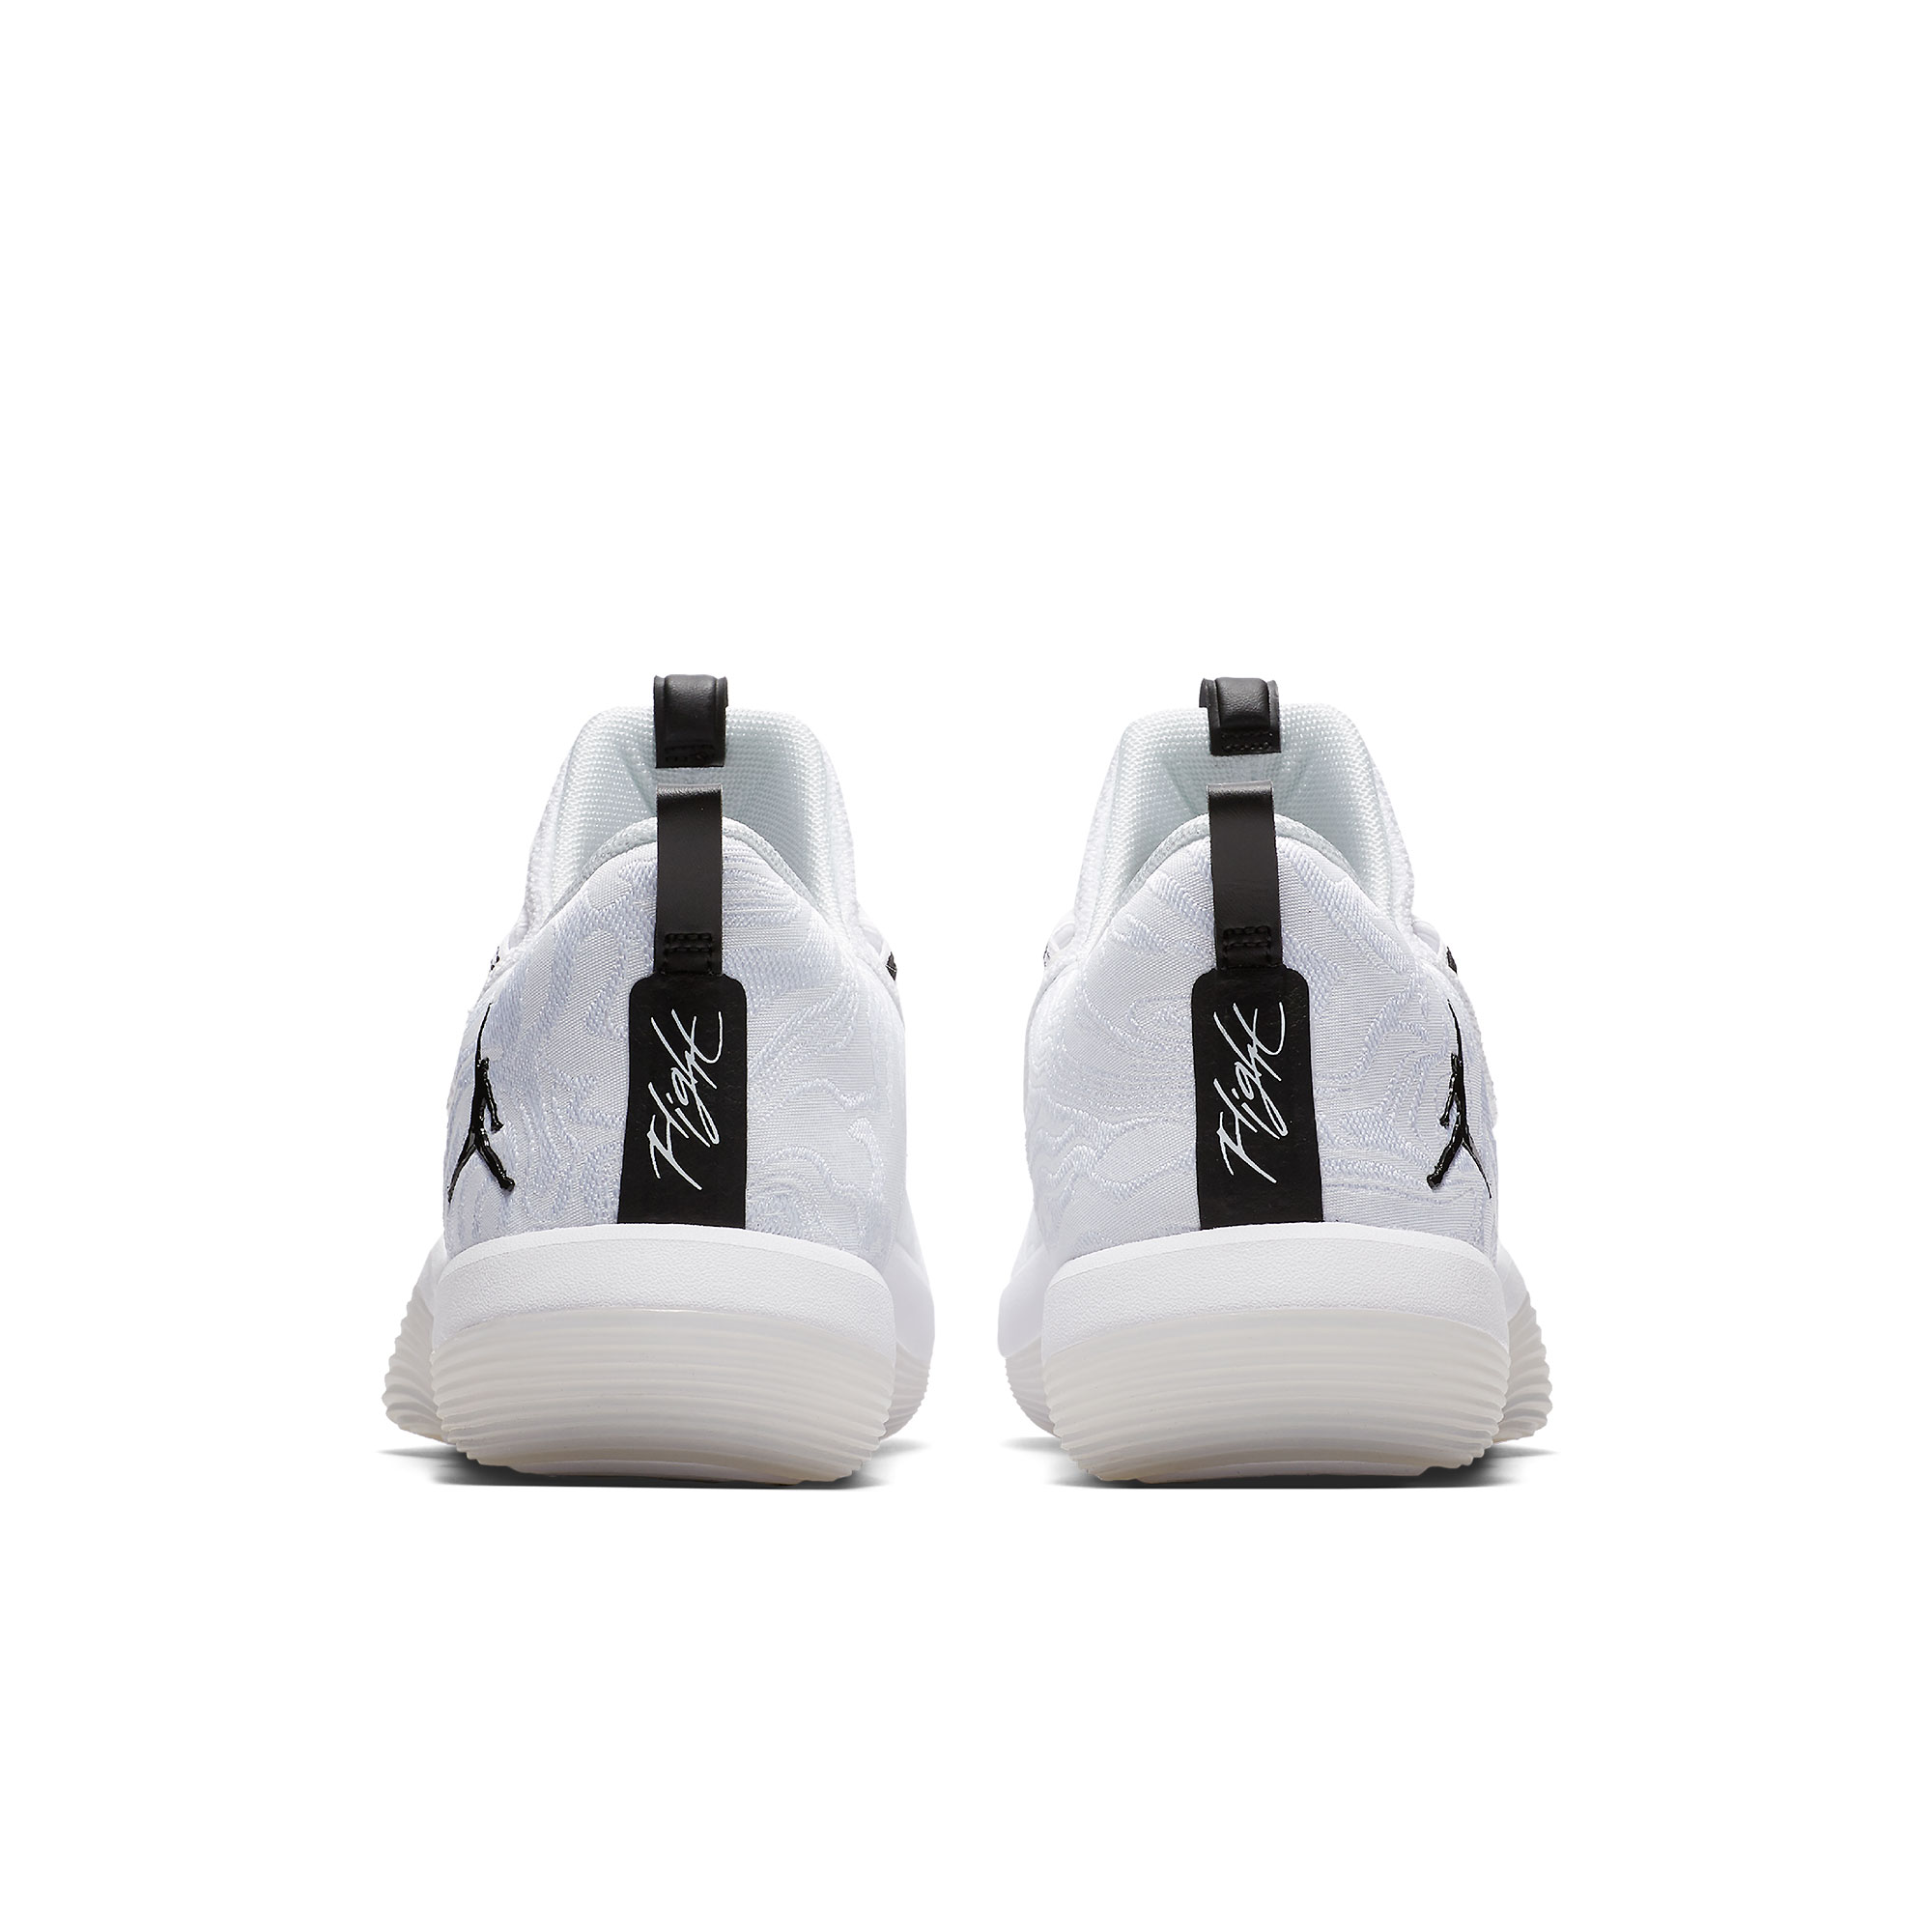 e9437e6bda4 Original Authentic NIKE JORDAN SUPER.FLY LOW PF Flywire Mens Basketball  Shoes Sneakers Breathable AJ2664 Sport Outdoor Durable-in Basketball Shoes  from ...